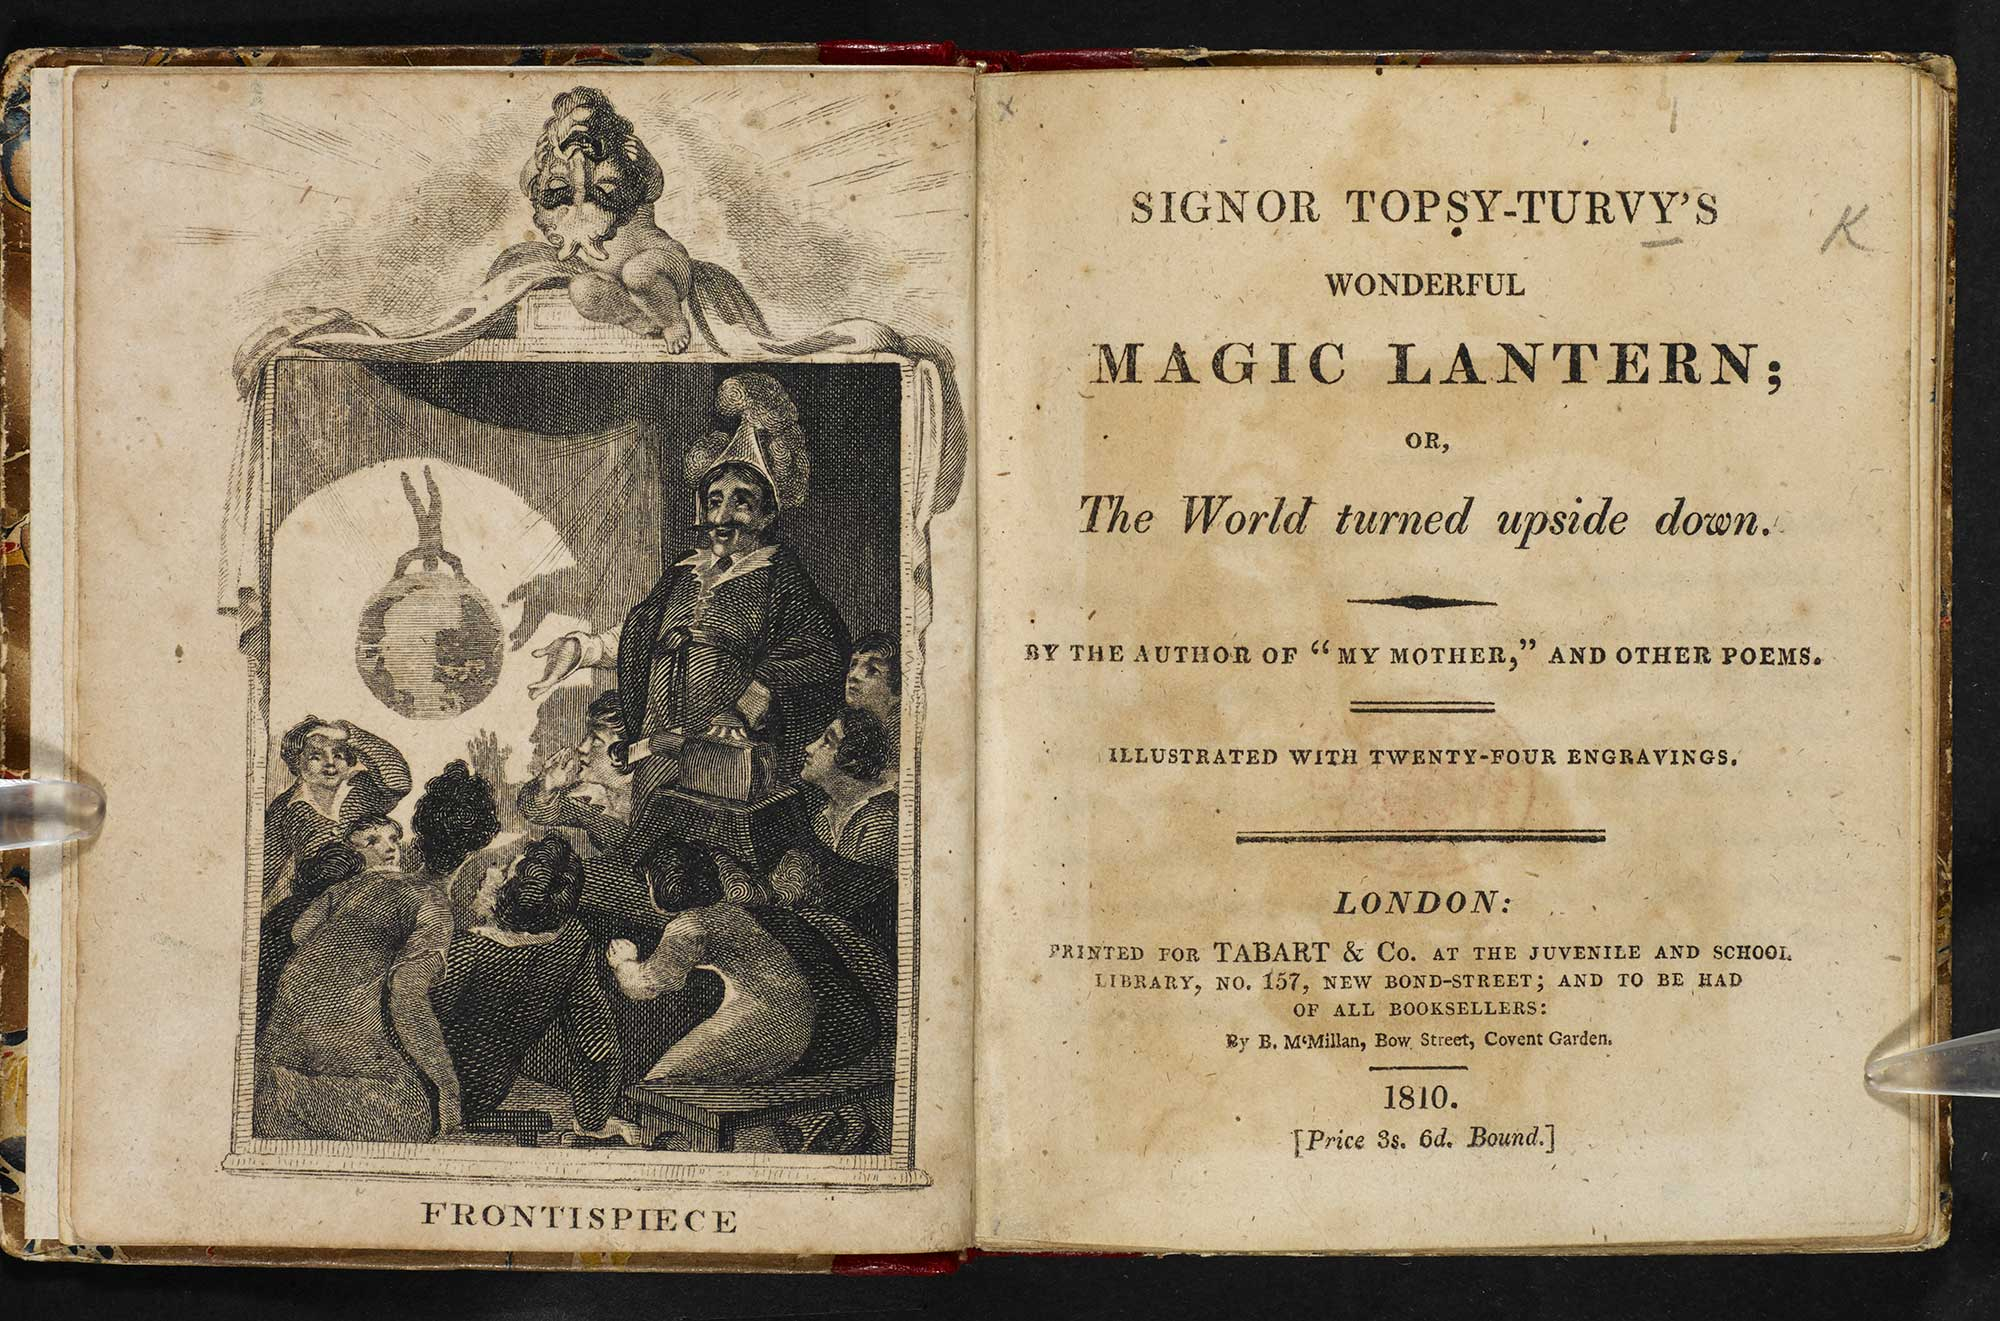 Signor Topsy-Turvy's Wonderful Magic Lantern; or, the World turned upside down [page: frontispiece and title page]